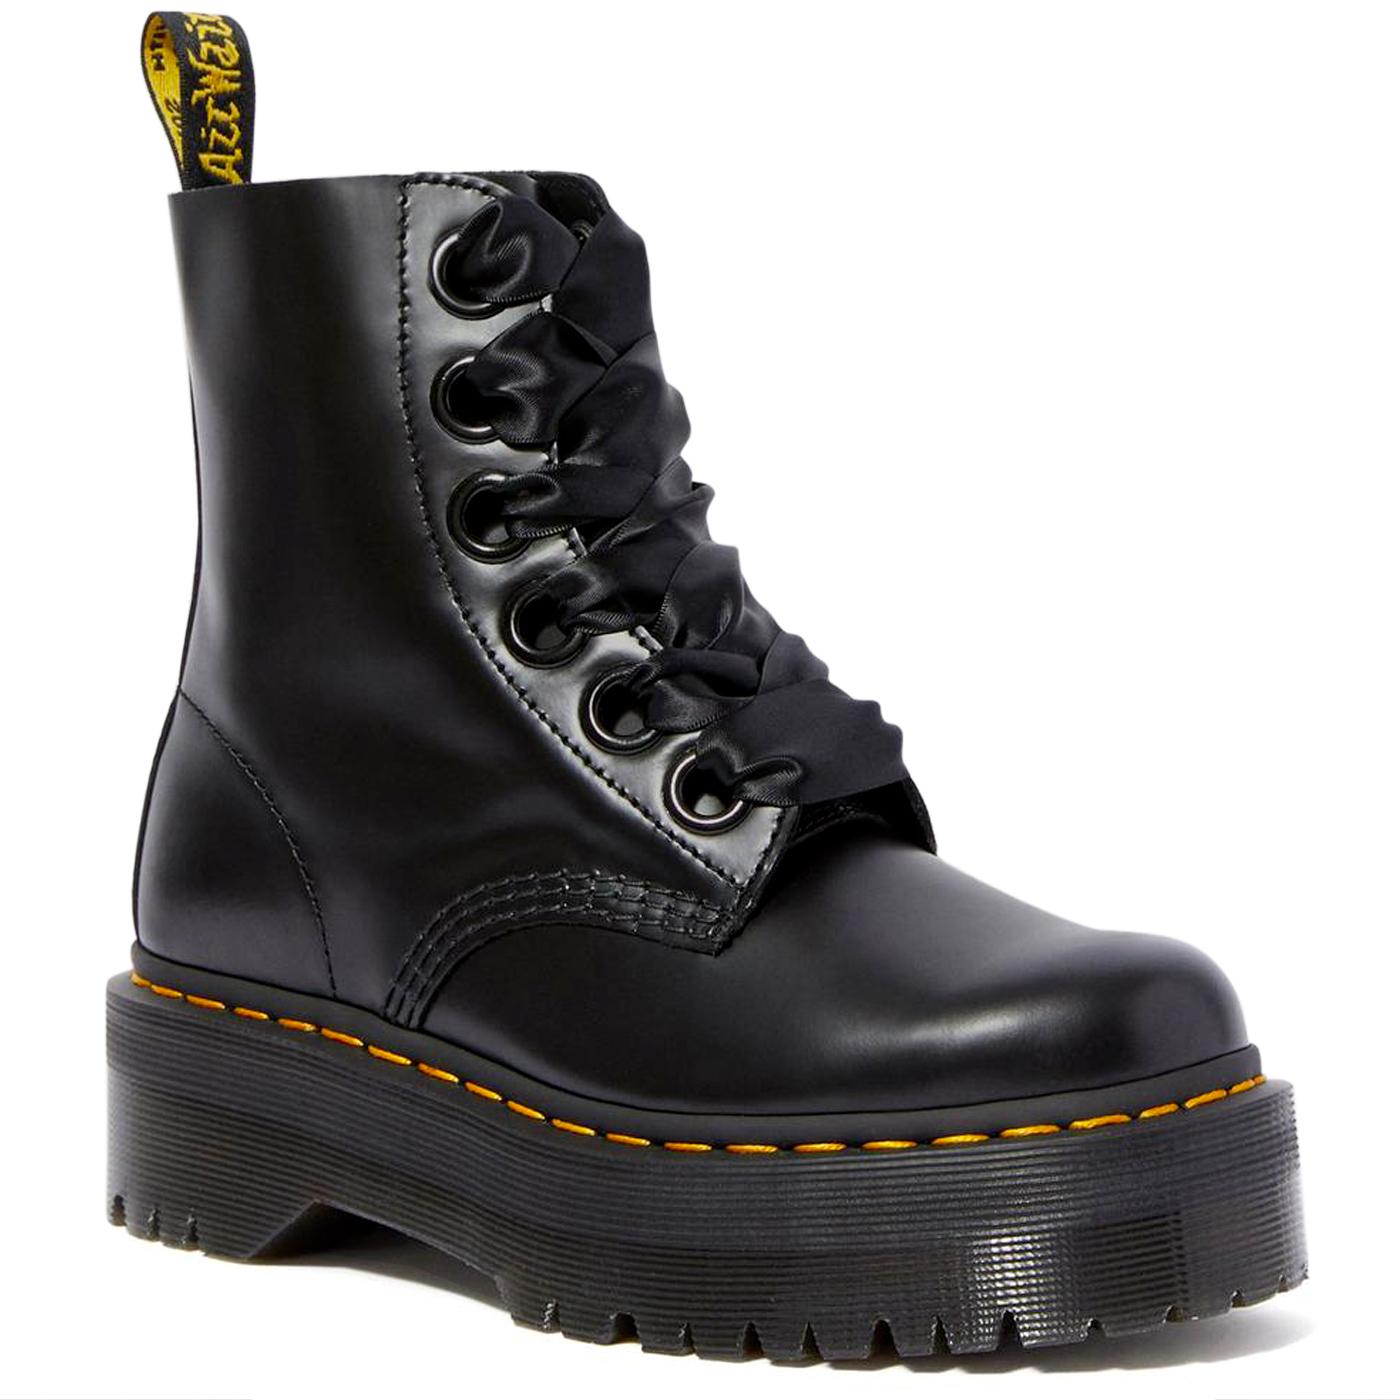 Molly DR MARTENS Women's Platform Leather Boots B